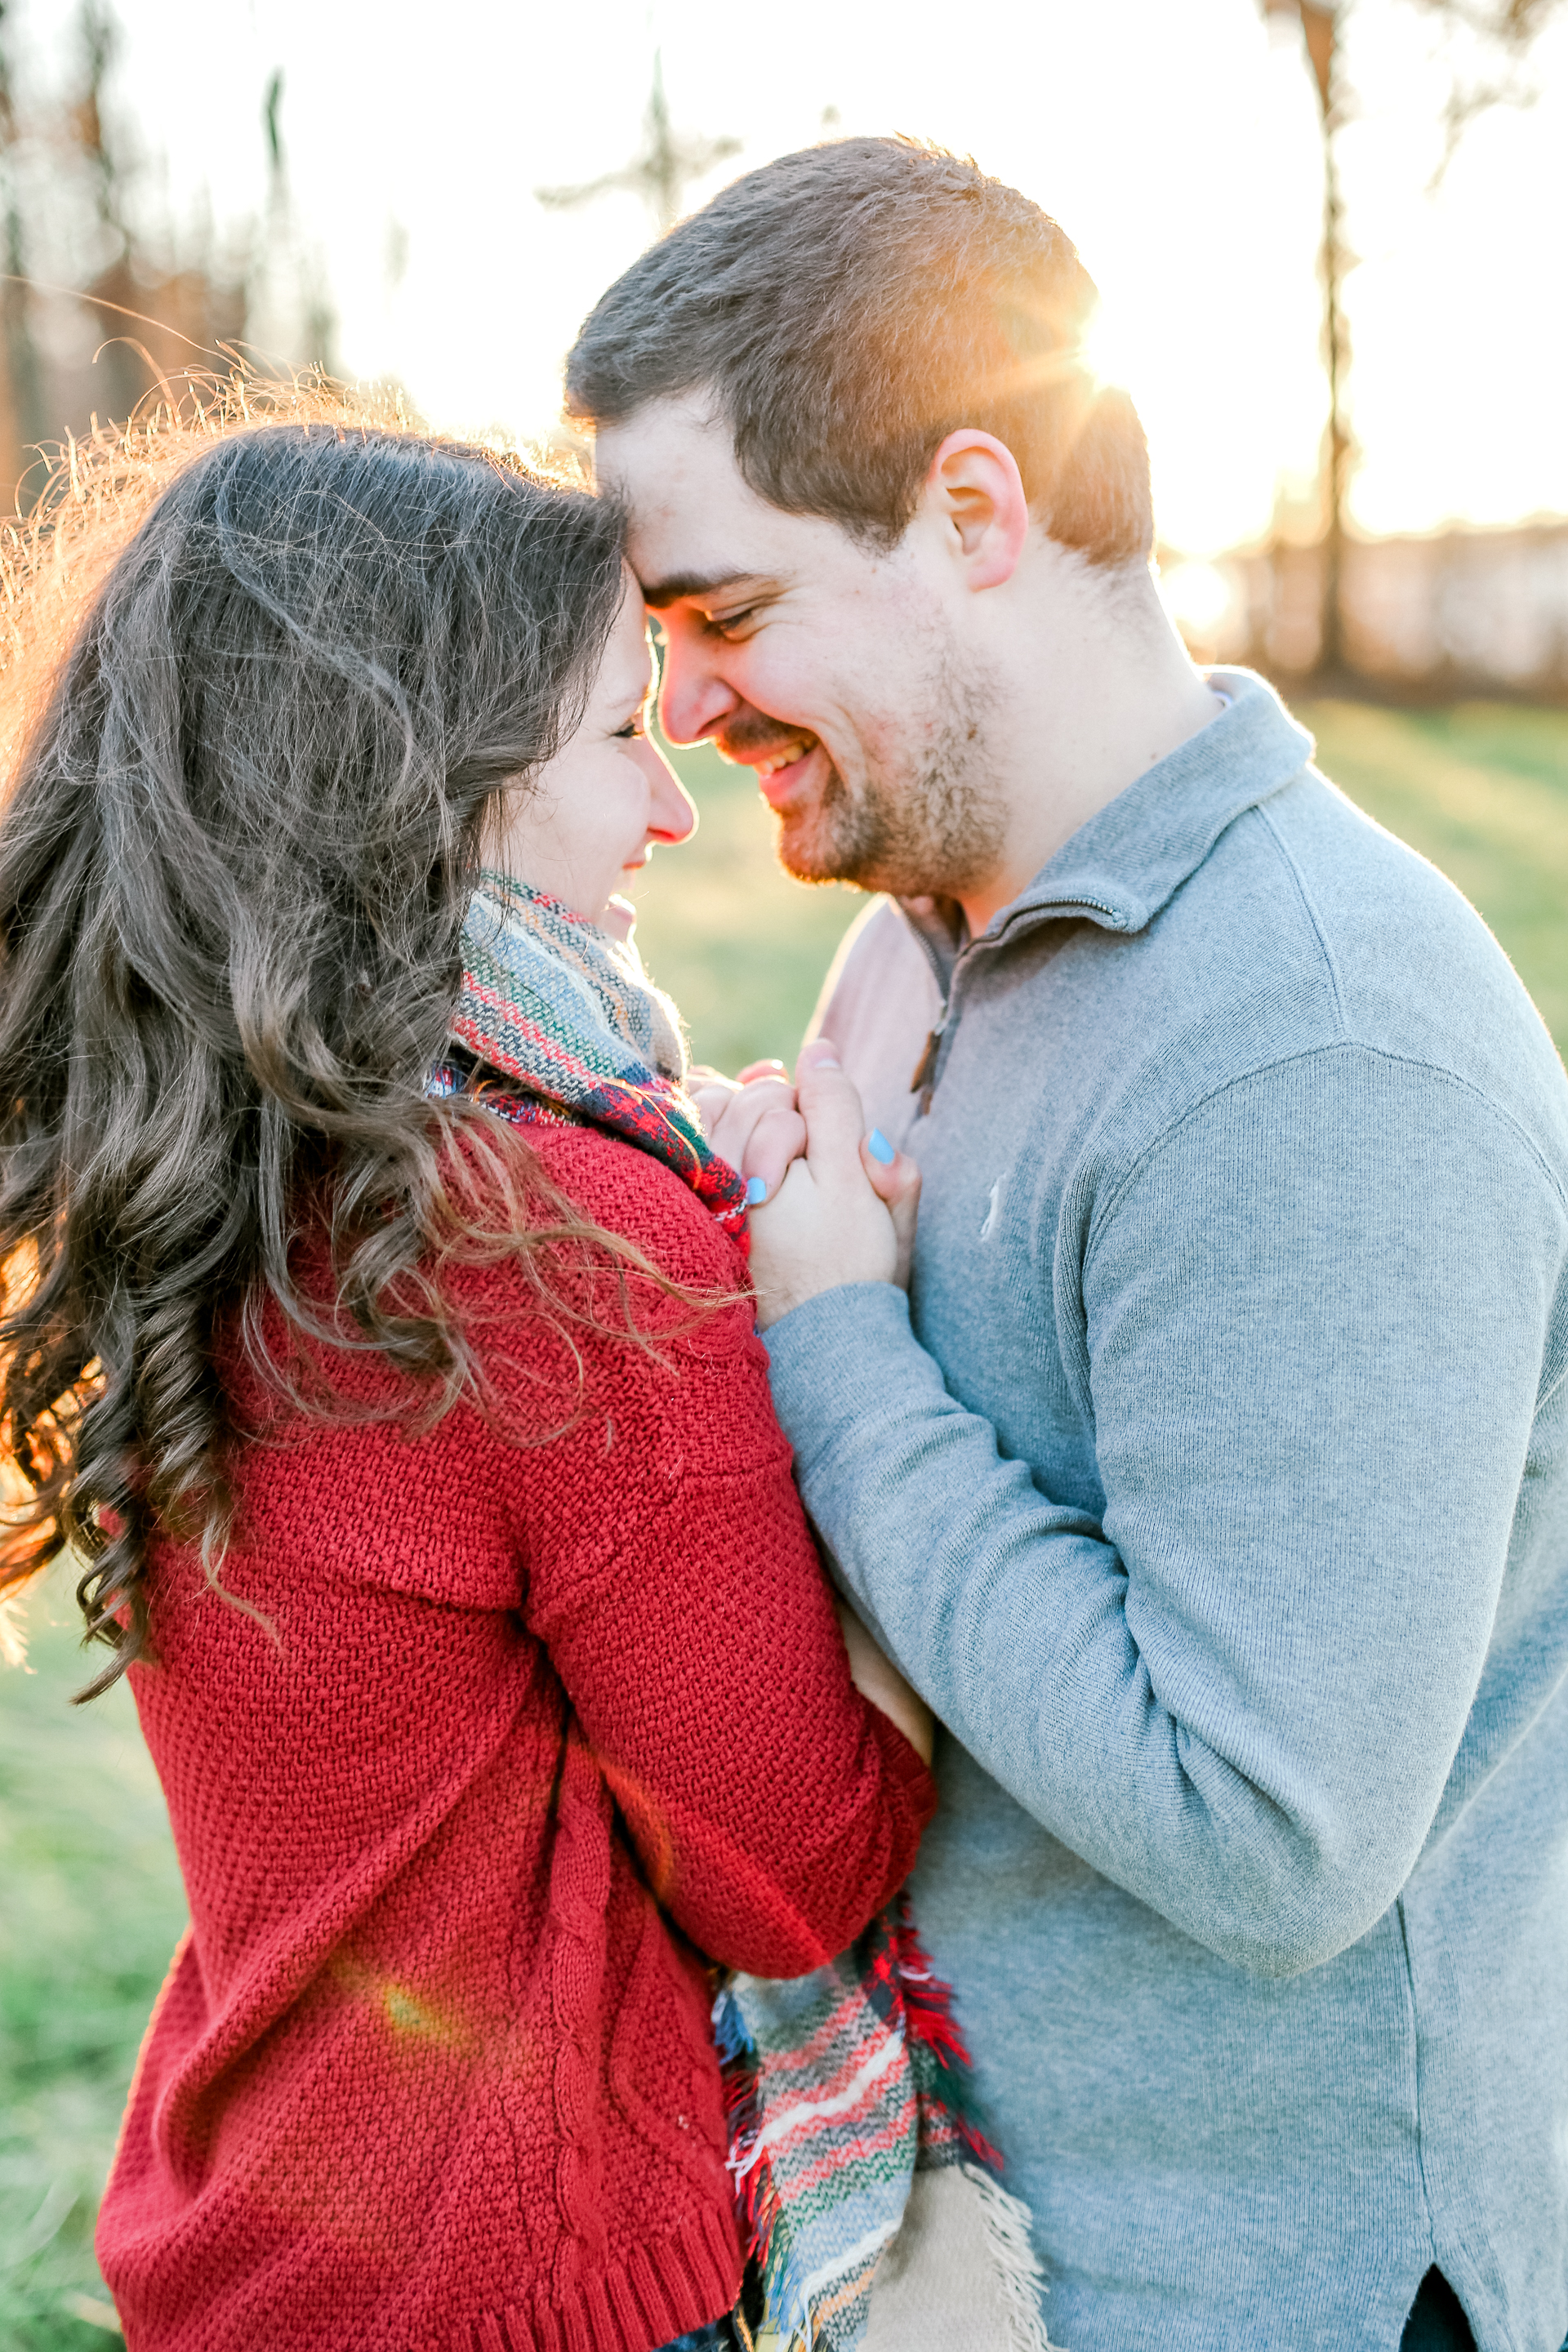 Bucks county Peace Valley Park Doylestown Lehigh Valley fall windy engagement session wedding and lifestyle photographer Lytle Photo Co (90 of 109).jpg